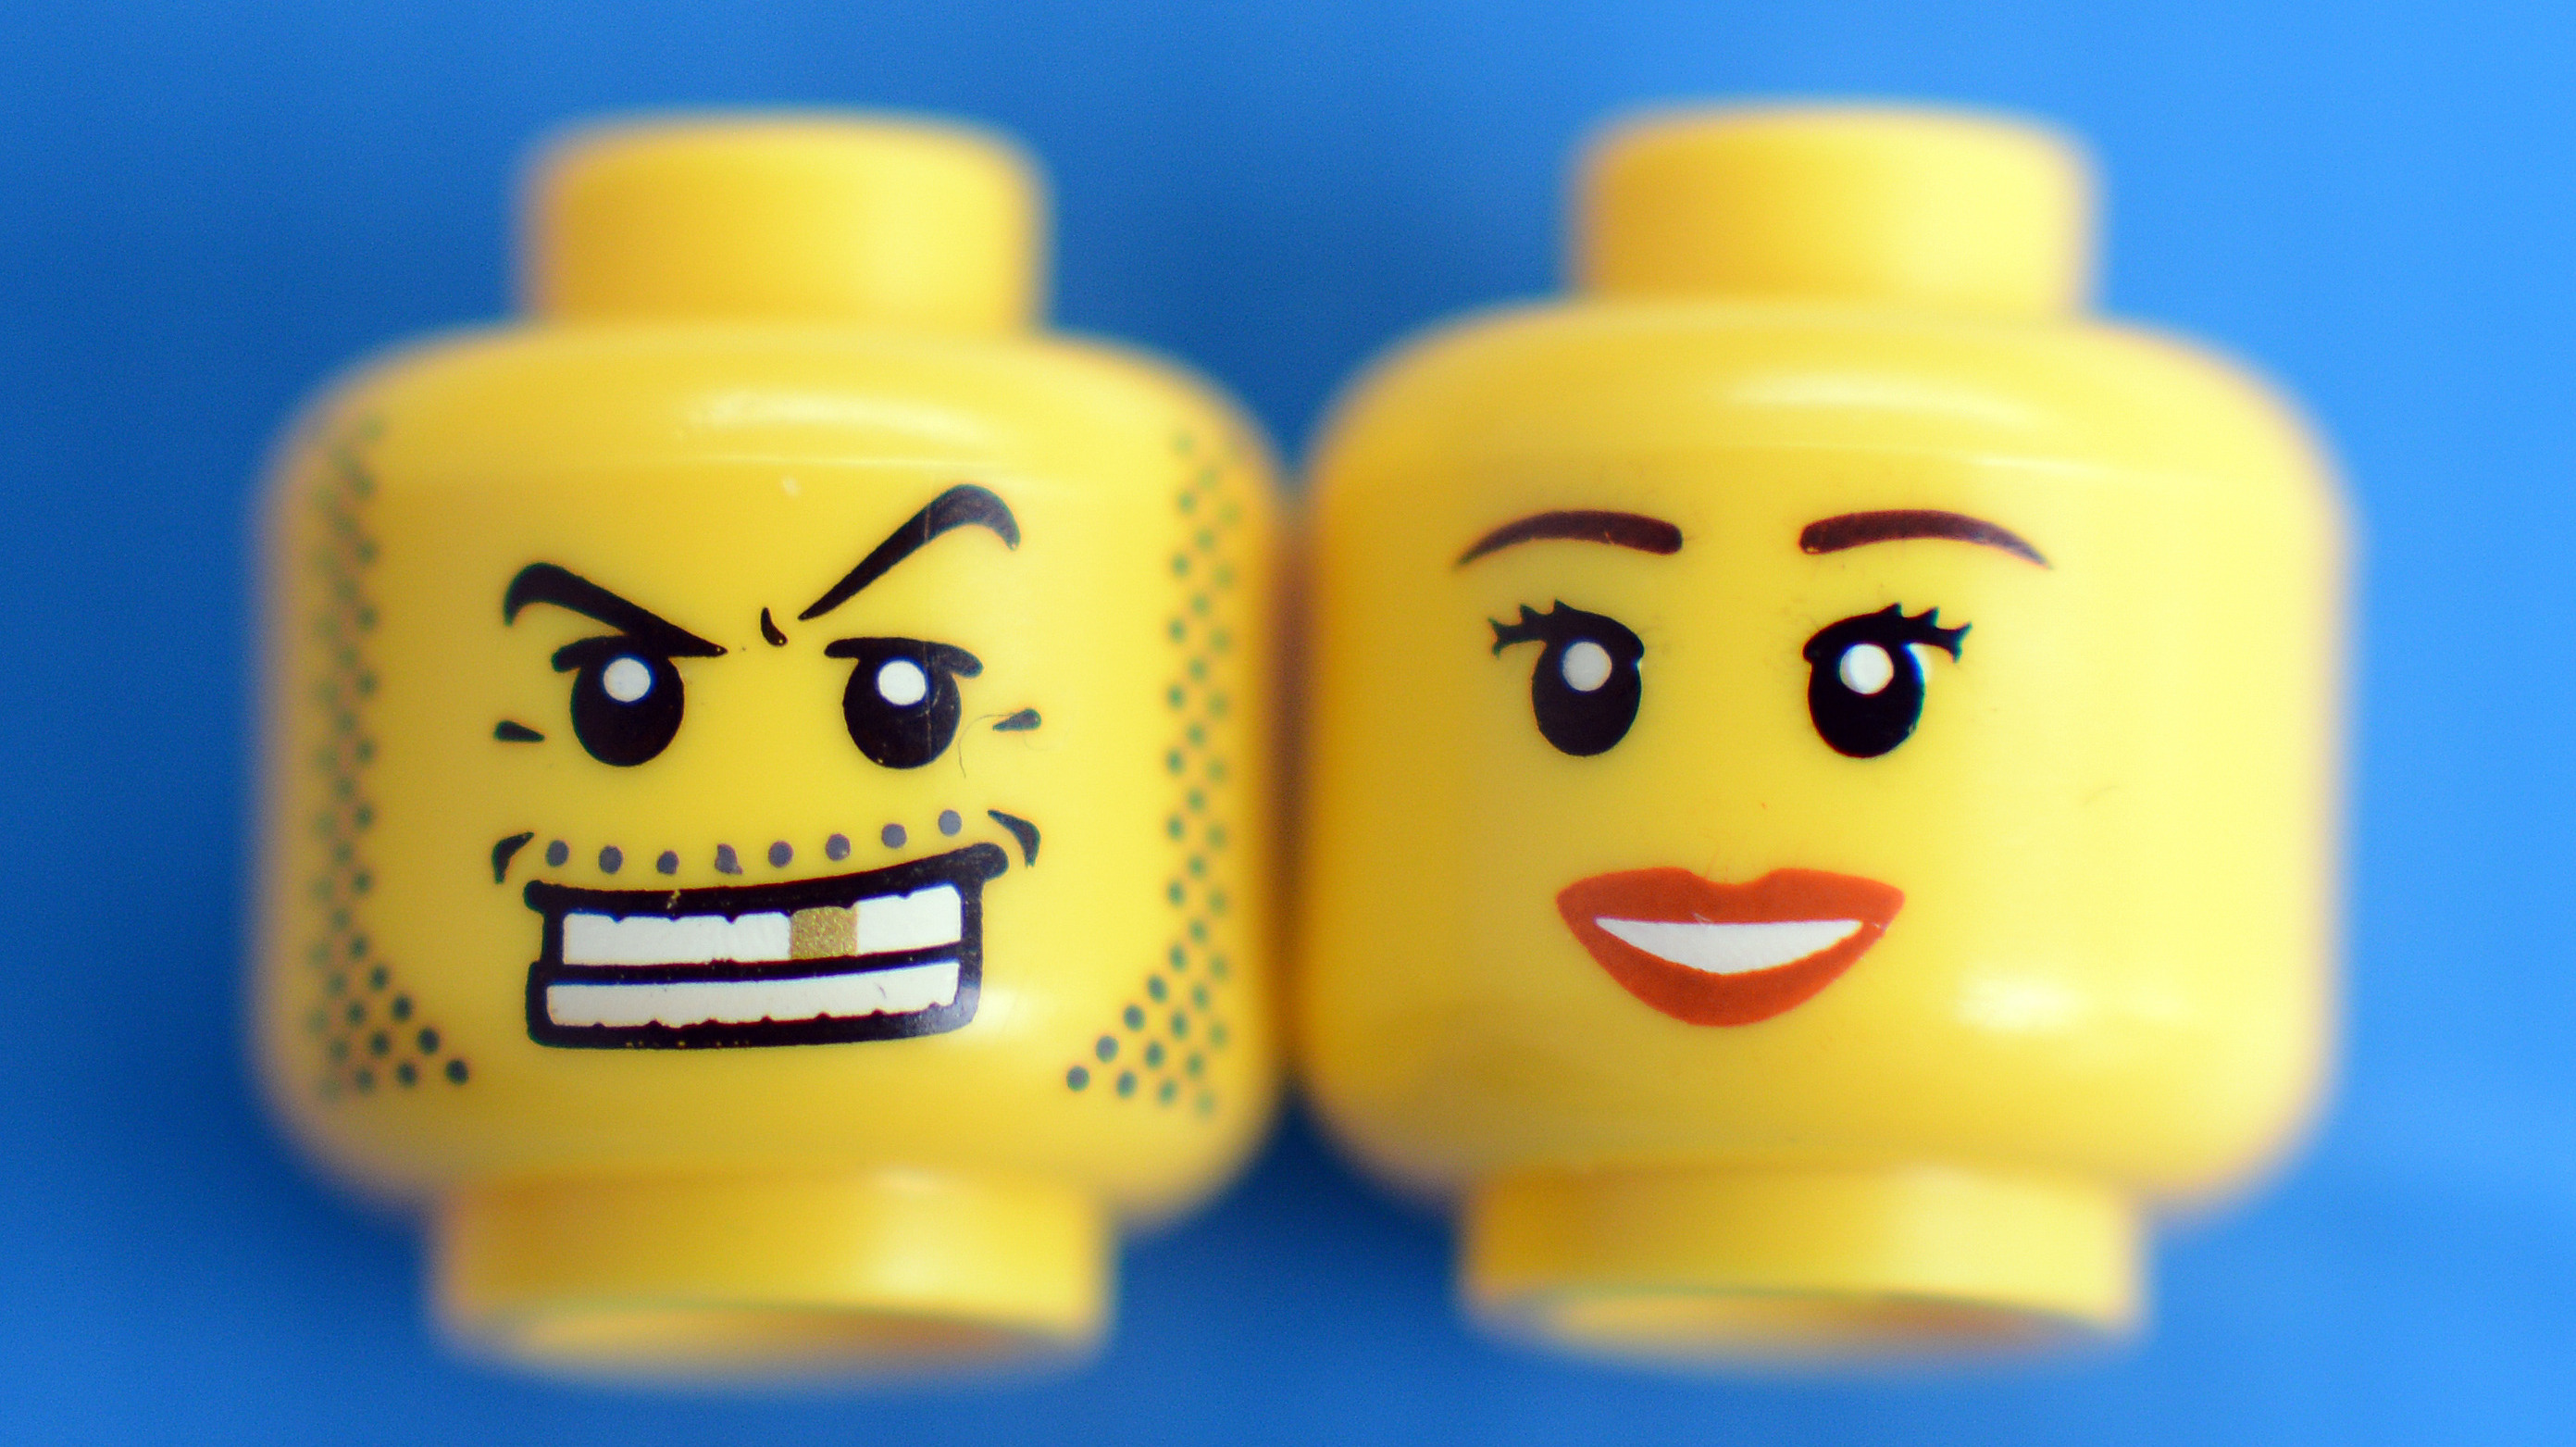 Lego People Clipart - Clipart Kid